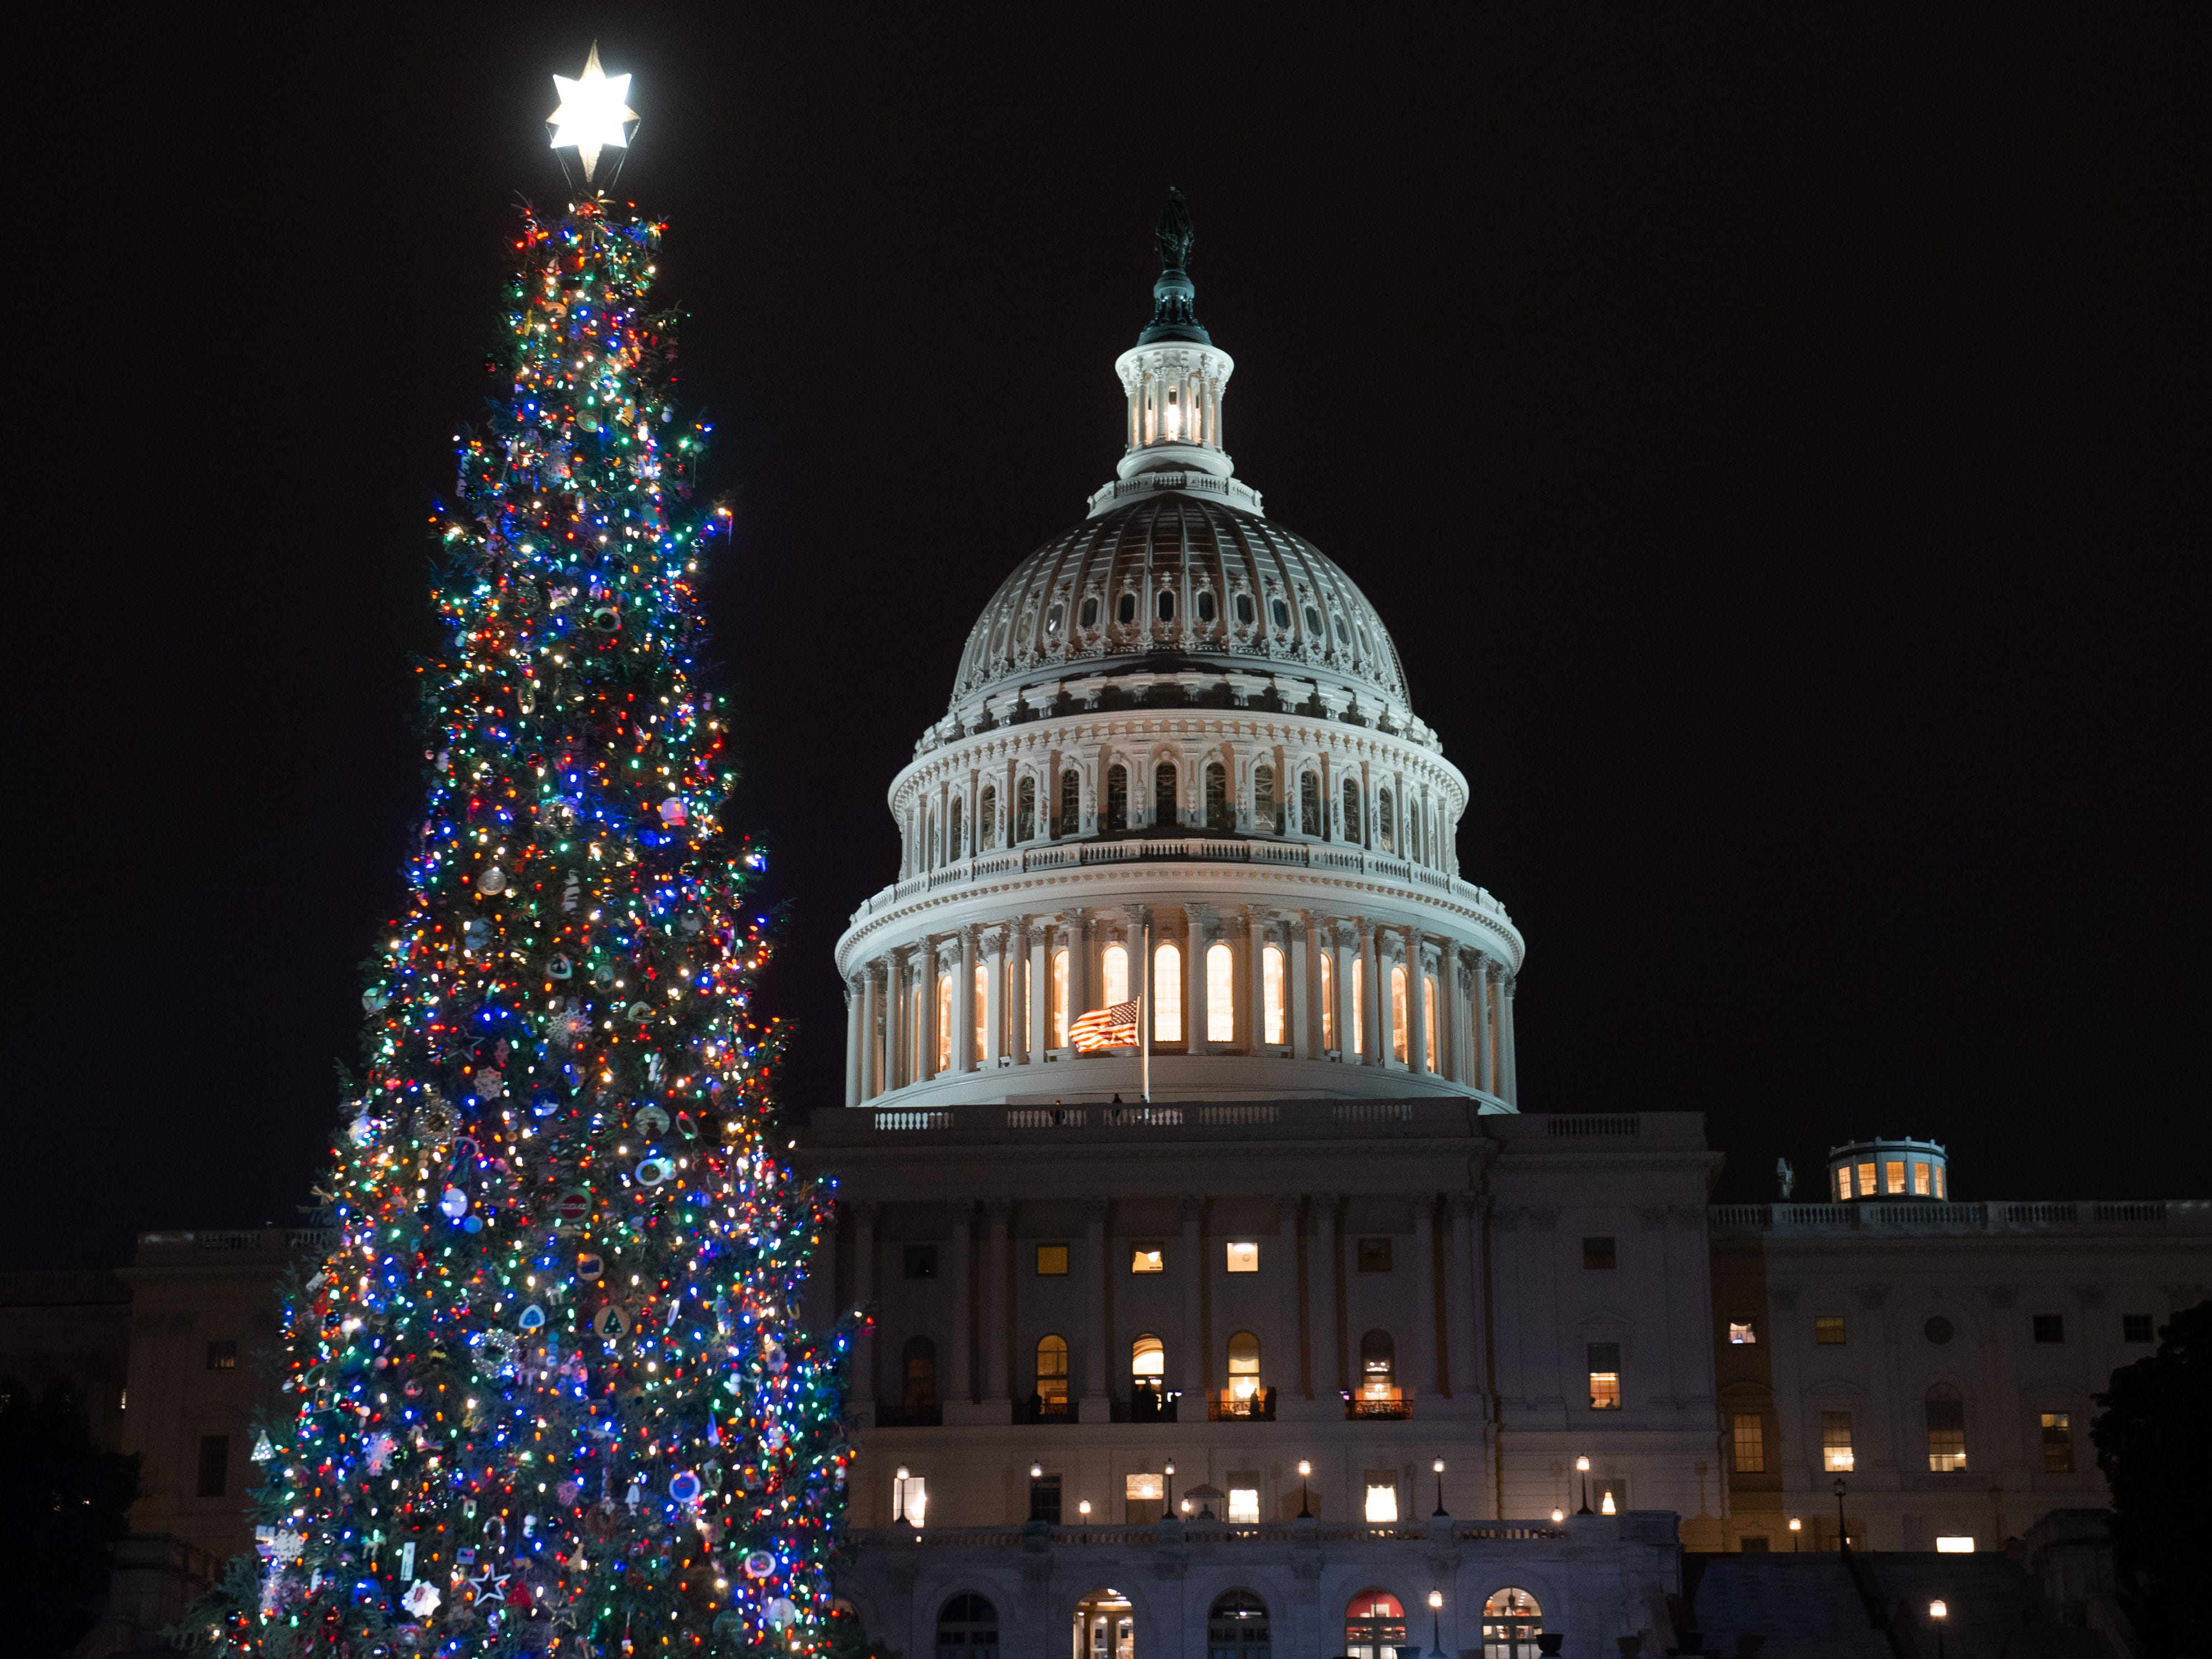 The US Capitol Christmas Tree, a Noble Fir from Oregon, is seen following a lighting ceremony on Capitol Hill in Washington, DC, December 6, 2018.